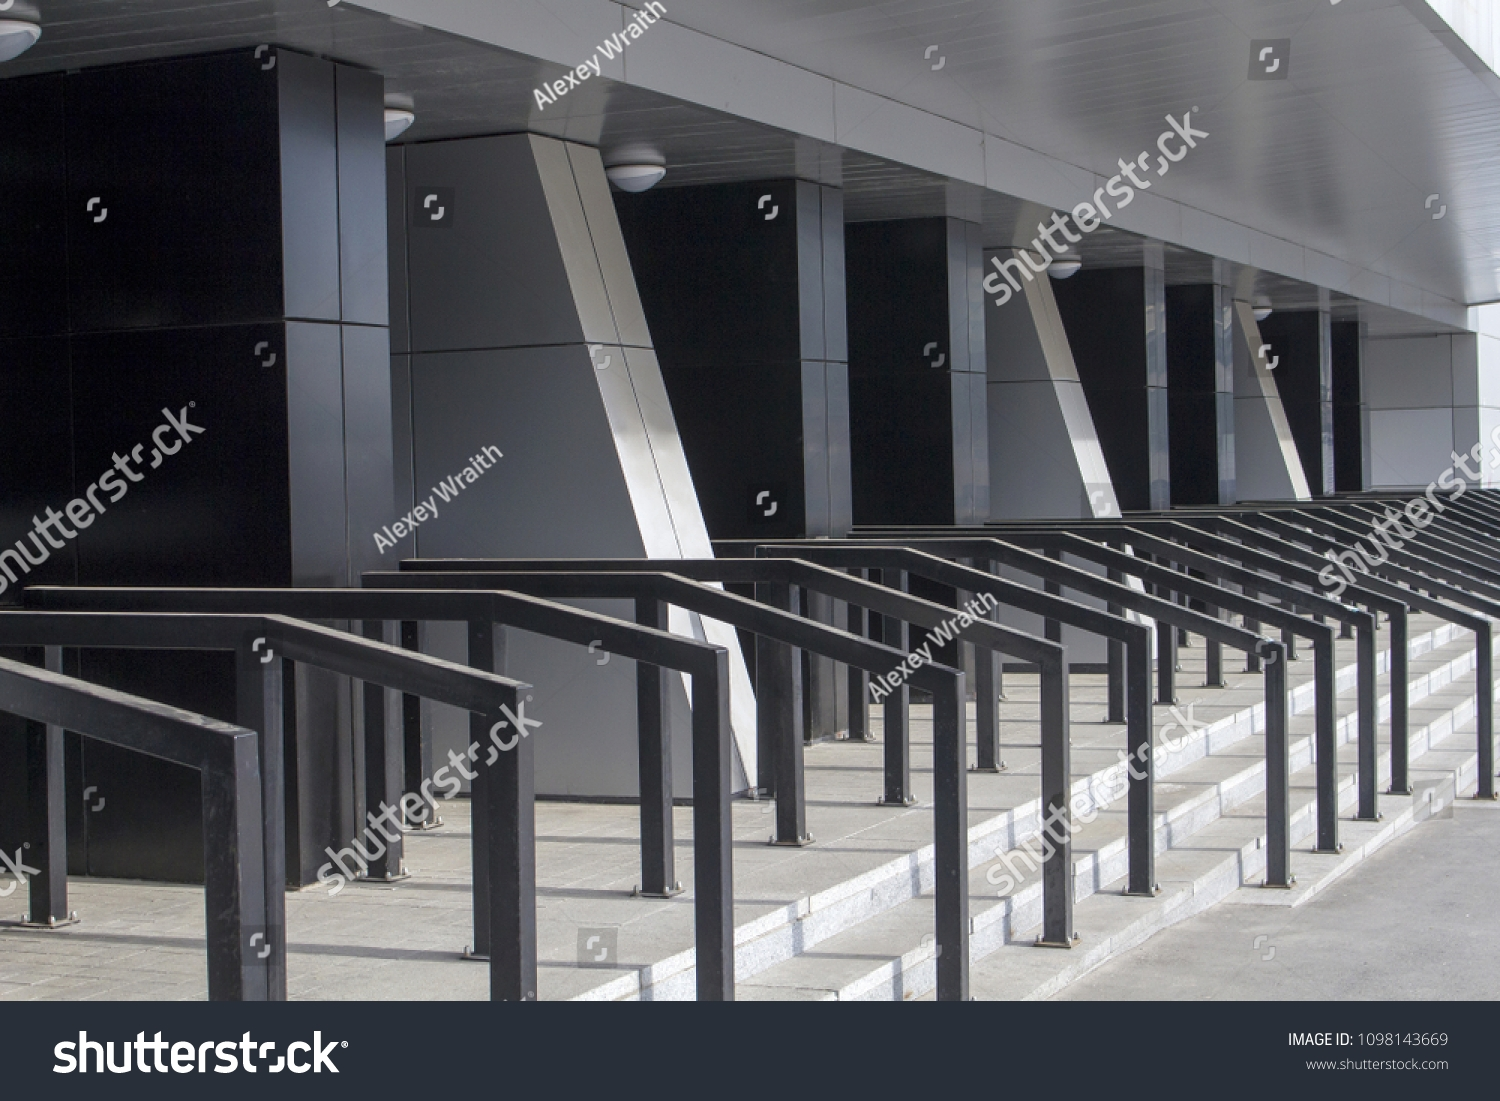 Stairs Concrete Steps Metal Handrails Front Buildings Landmarks   Metal Handrails For Concrete Steps   Wrought Iron   Easy   Patio   Safety   Different Style